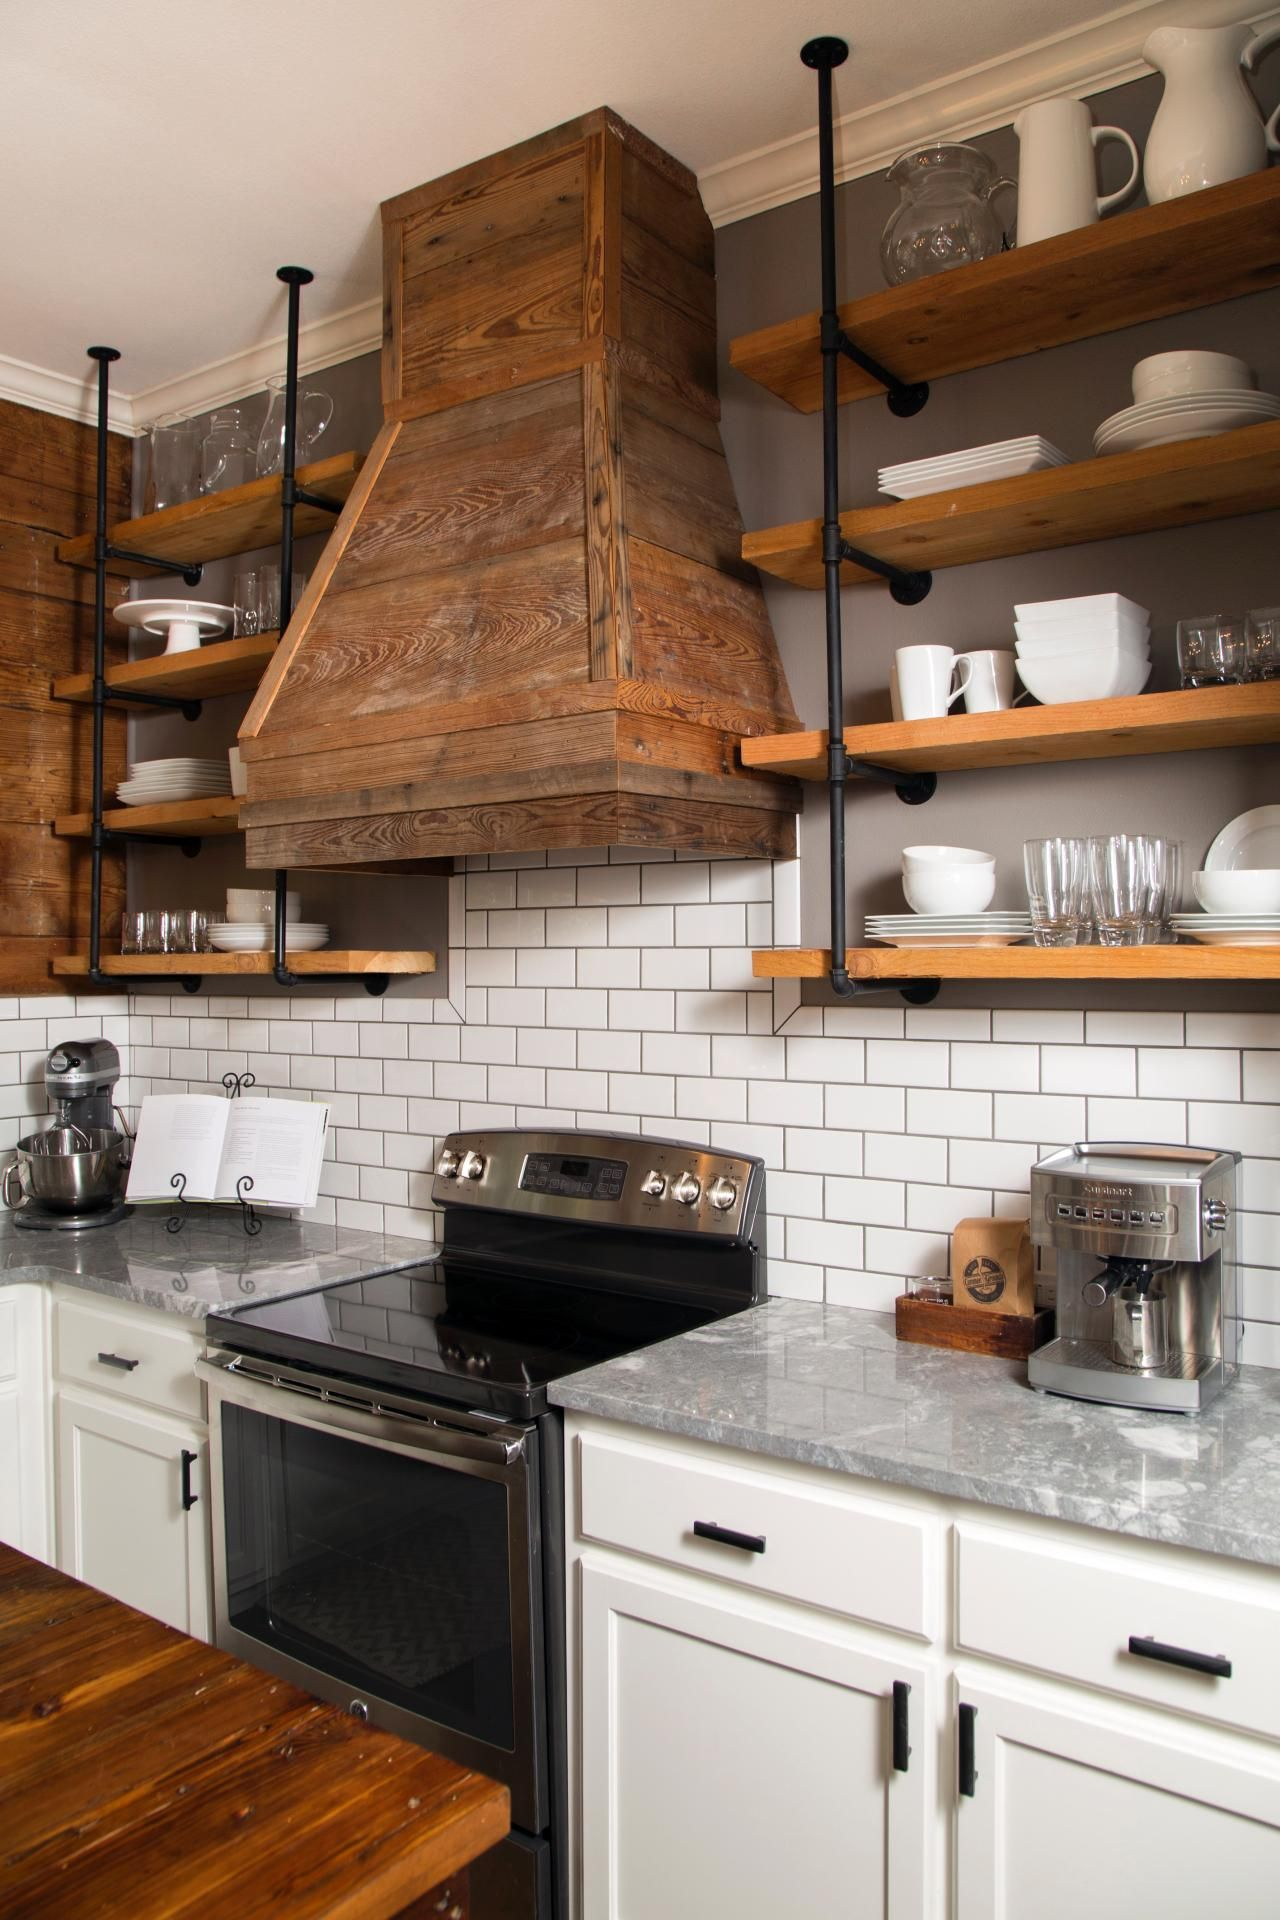 Rustic Kitchen Shelving Fixer Upper A Craftsman Remodel For Coffeehouse Owners Open